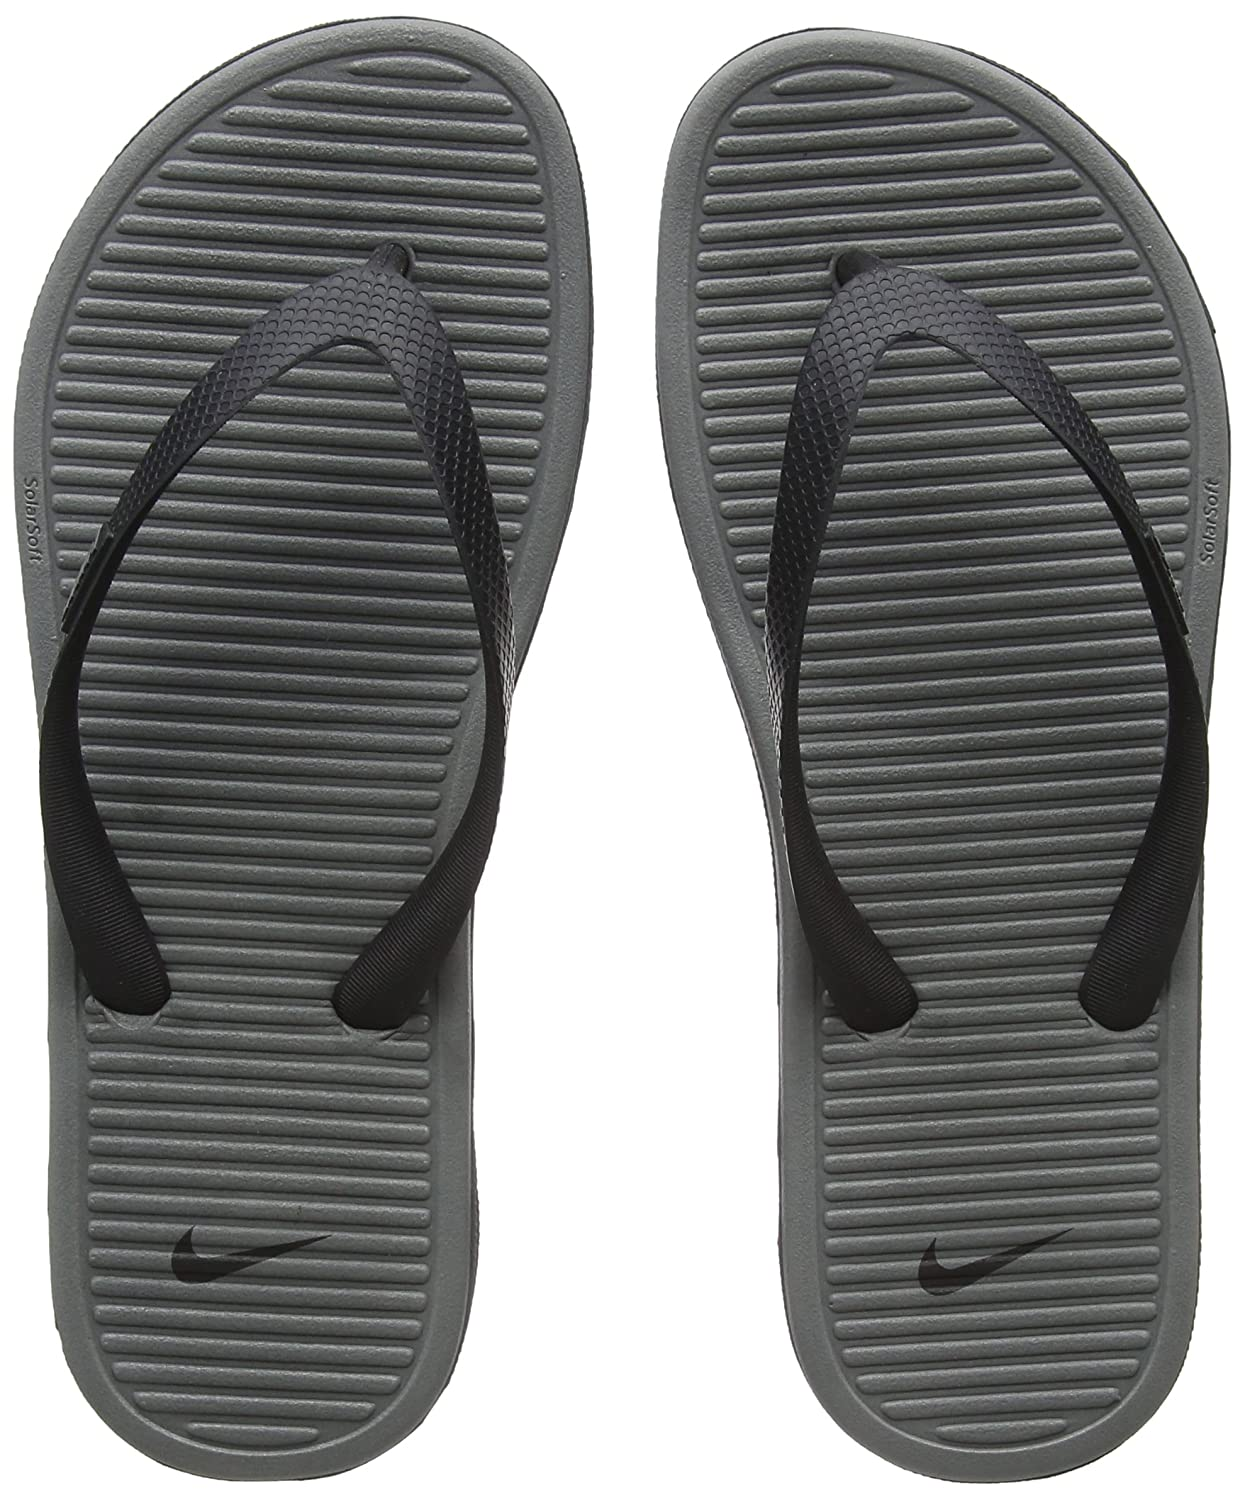 4057397cb41836 Nike Solarsoft Thong II Black Grey Men s Sandals Flip Flops Size 11  Buy  Online at Low Prices in India - Amazon.in